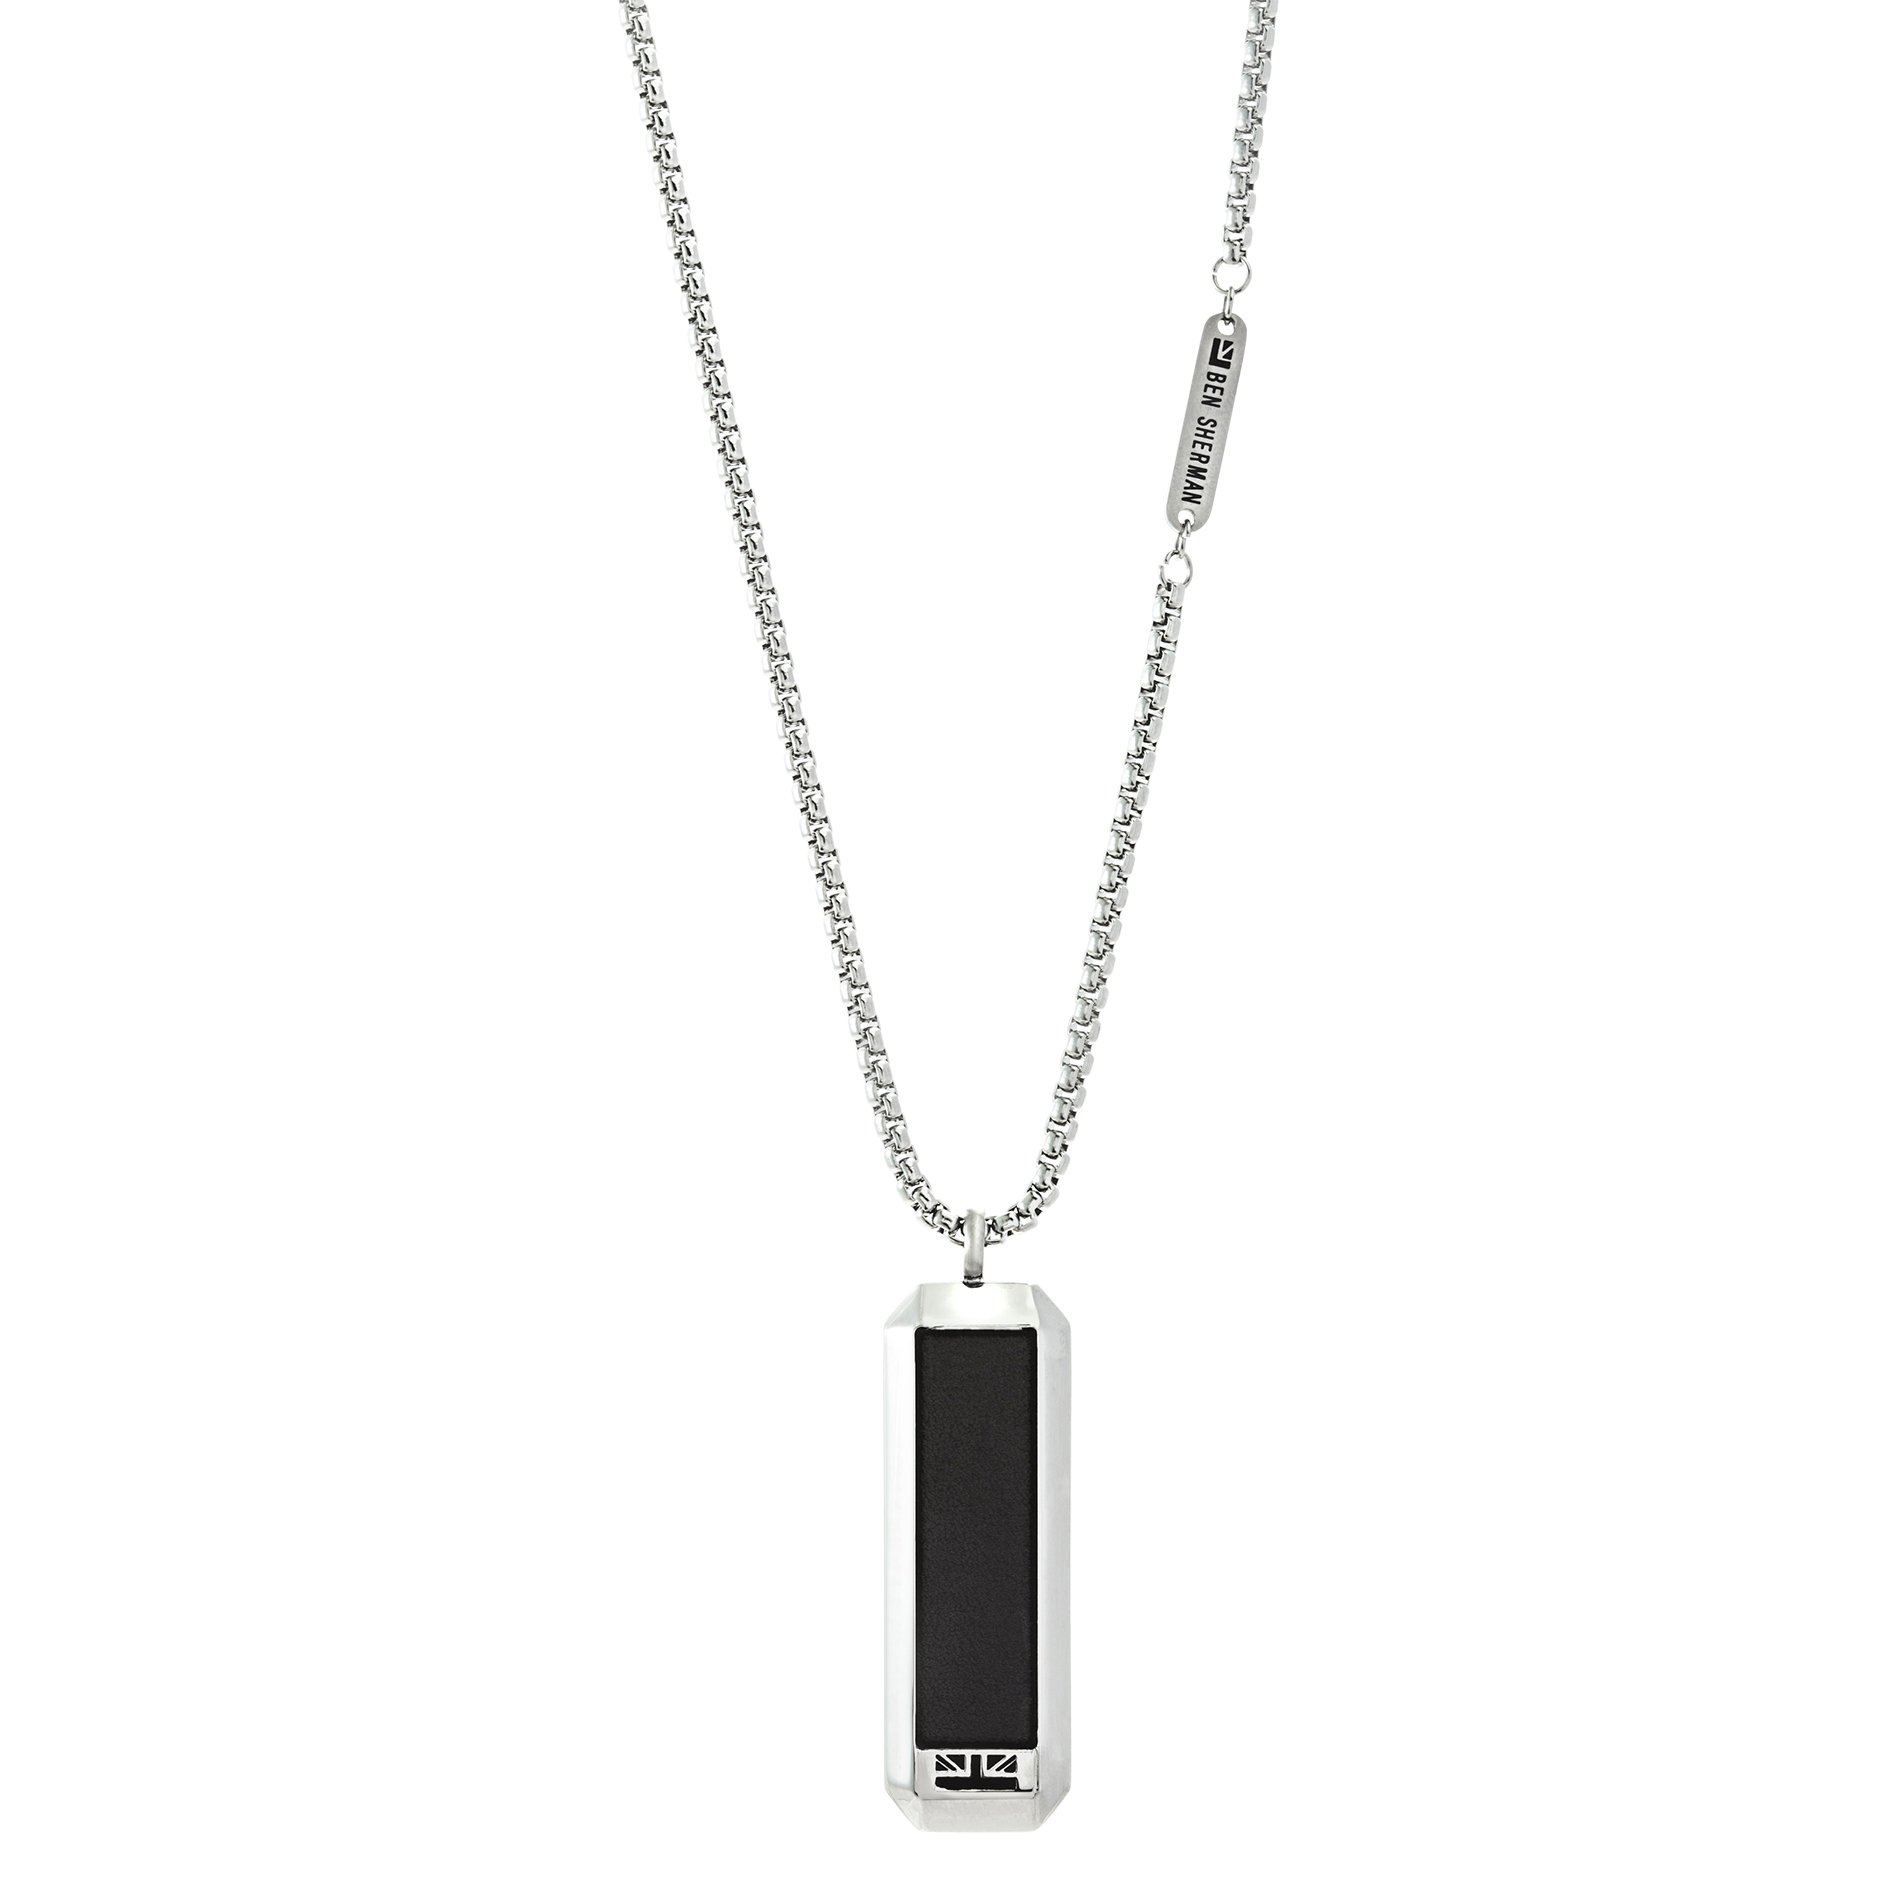 Ben Sherman Stainless Steel Men's Leather Dog Tag Pendant 26'' Box Chain Necklace (Black/Silver)